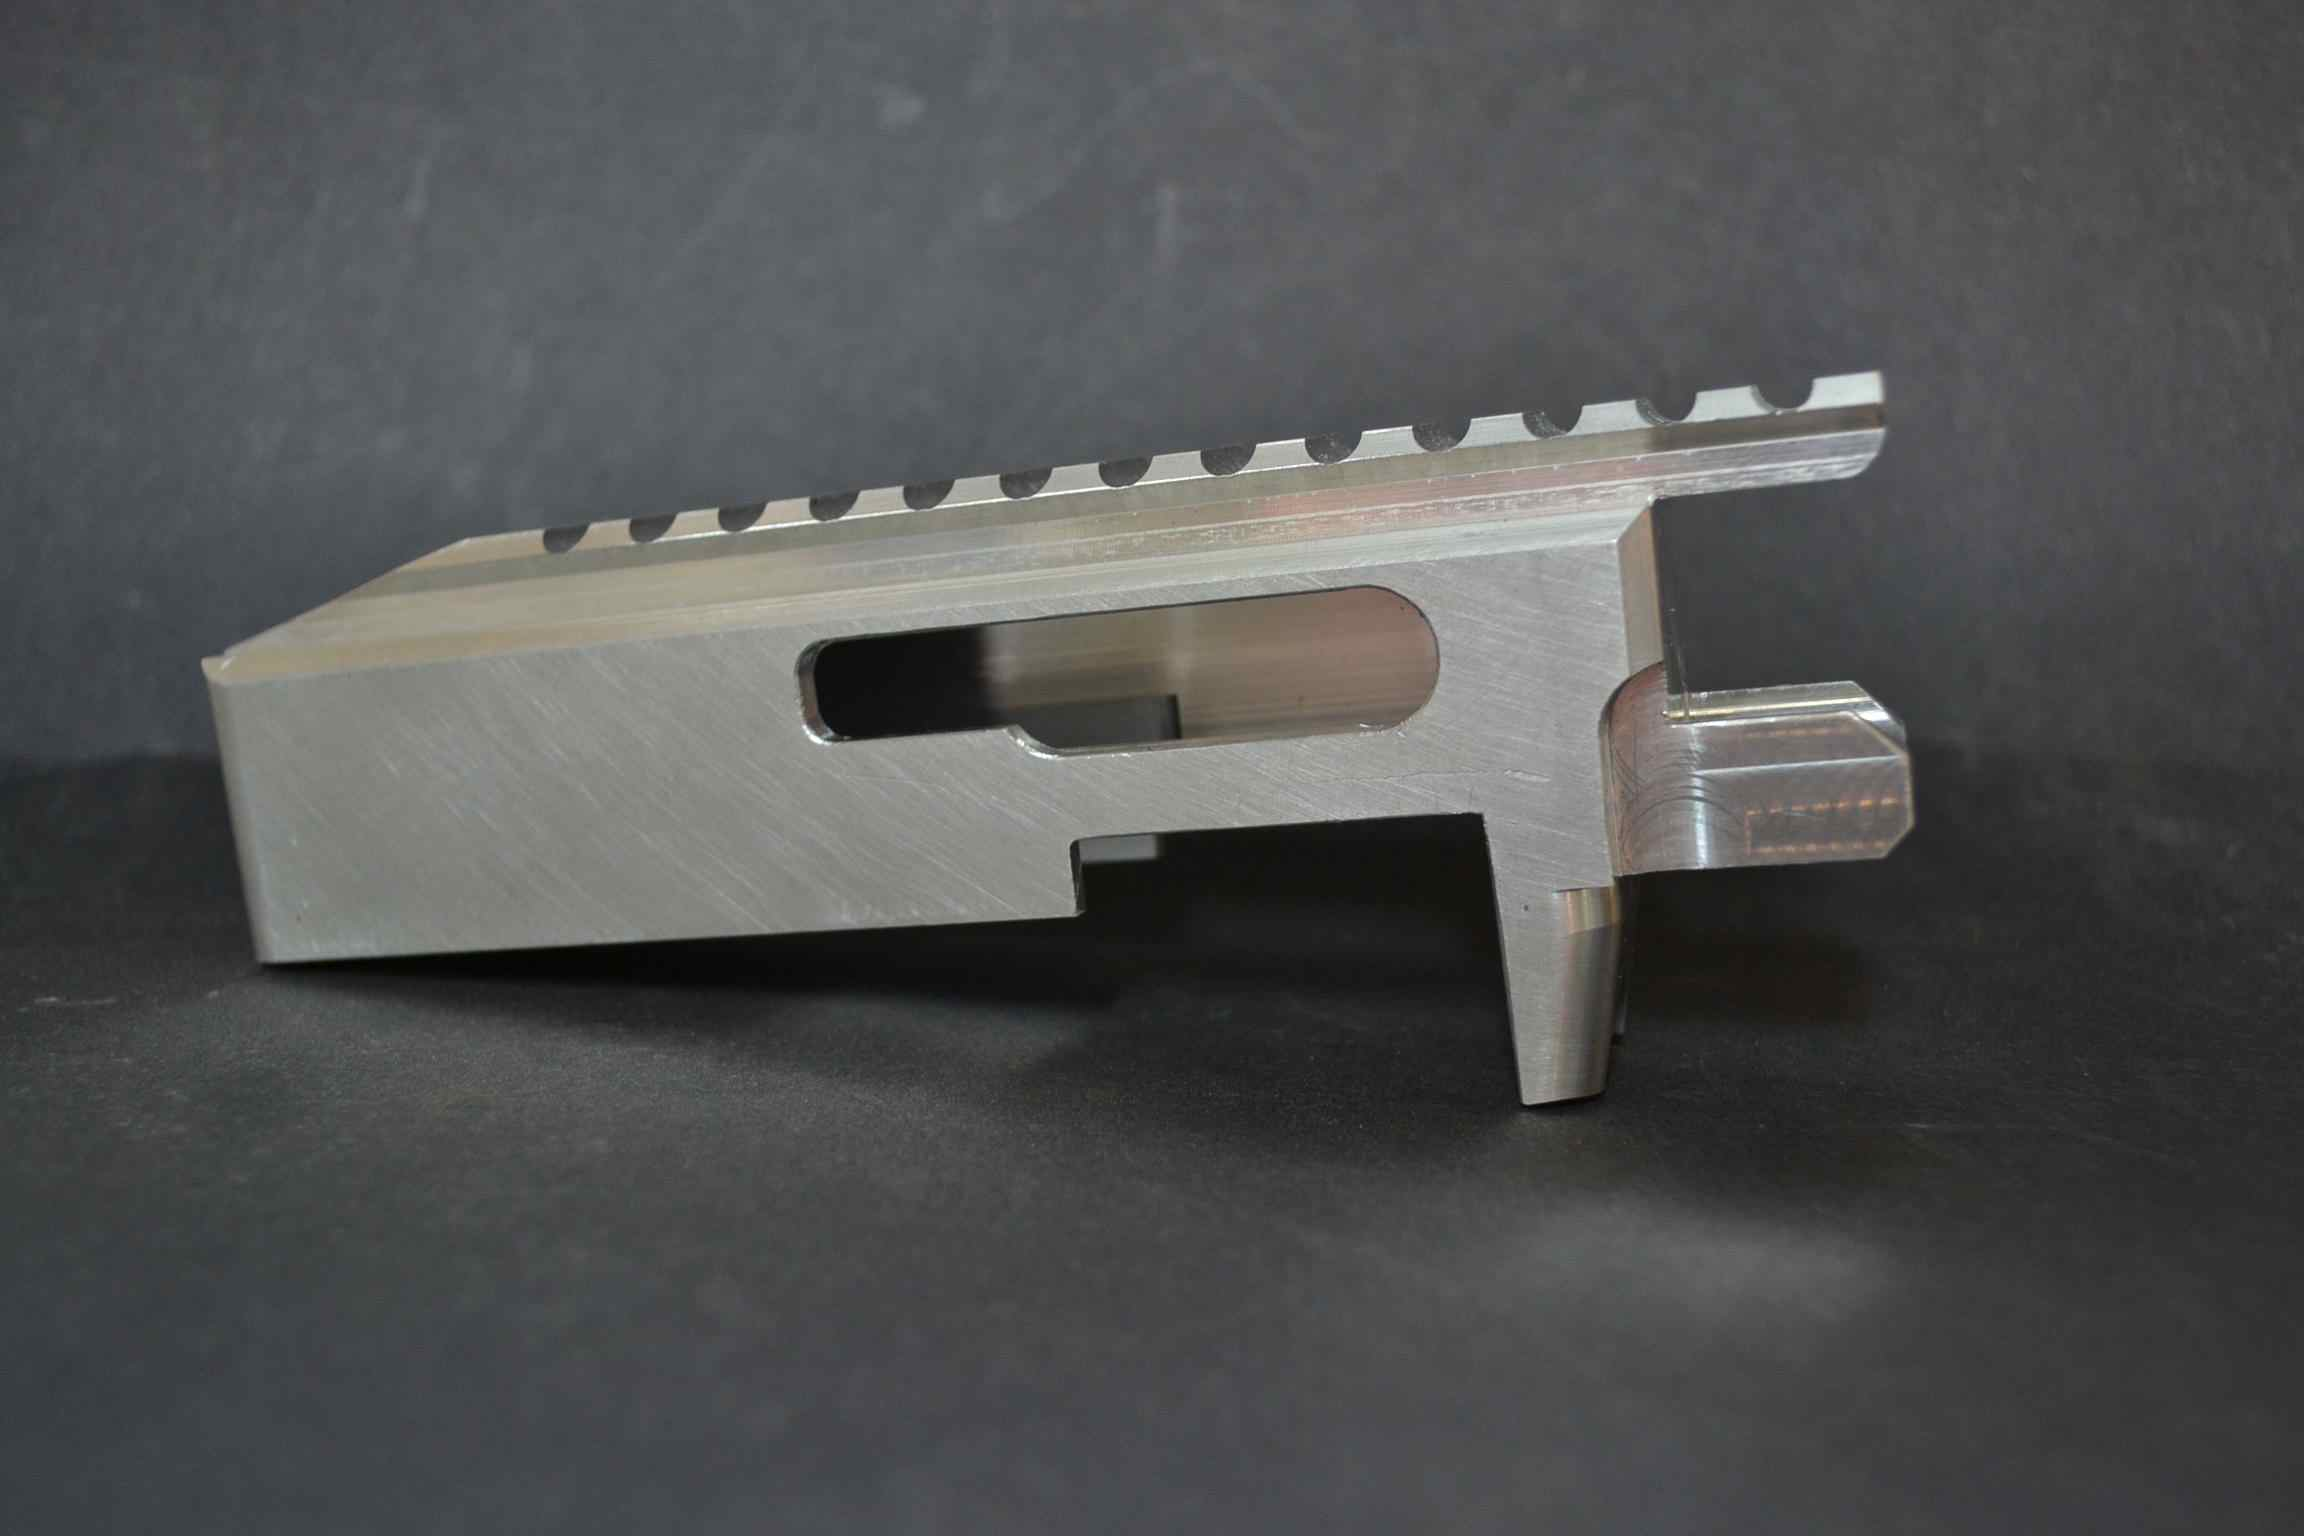 Ak 47 80 receiver - Here Is Our 80 Razor Receiver As Supplied By Select Fire Llc This Is